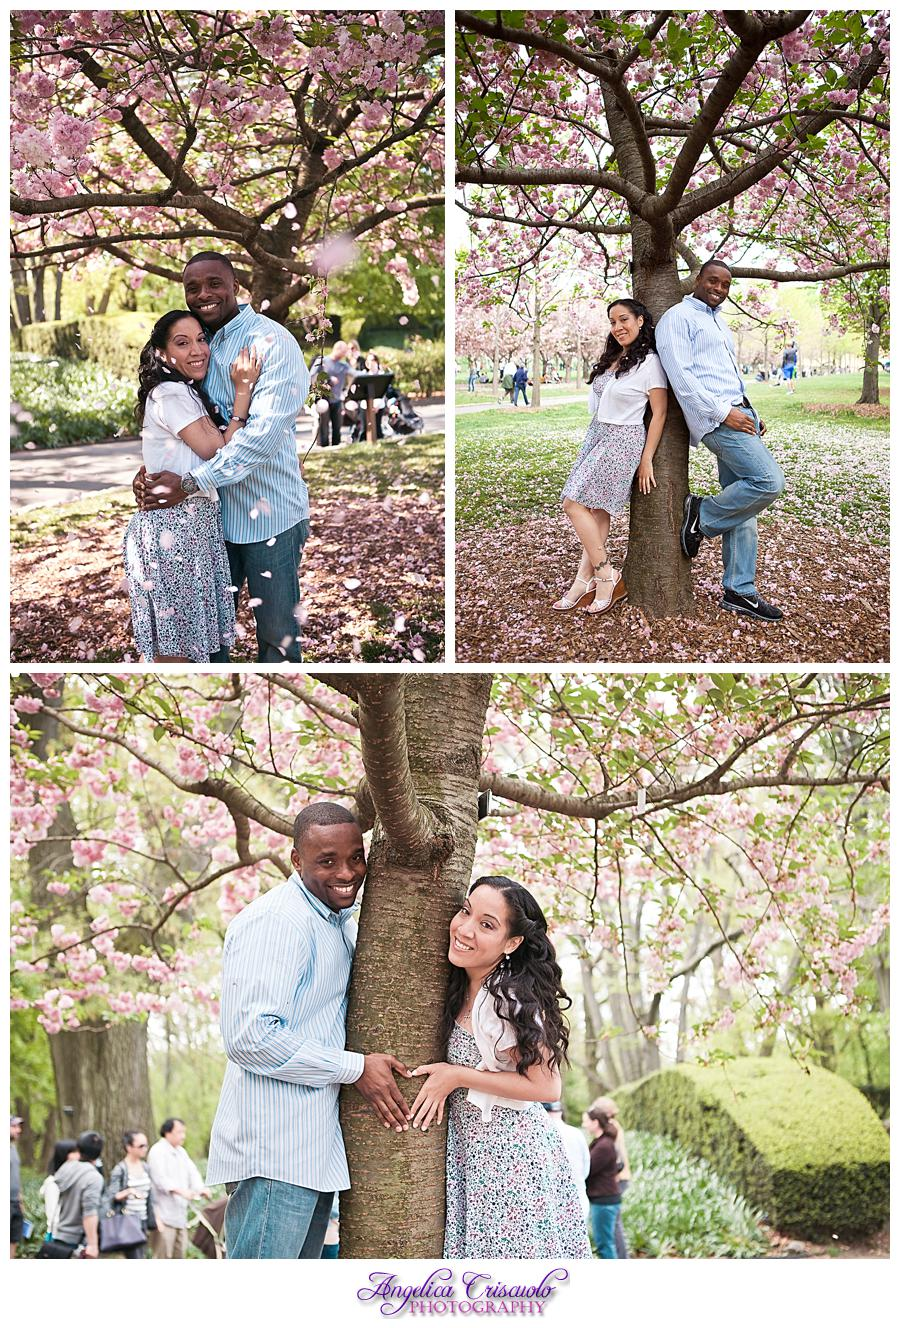 Guadalupe Roy Engagement Brooklyn Botanical Garden Cherry Blossoms Engagement Ideas Tulips 001